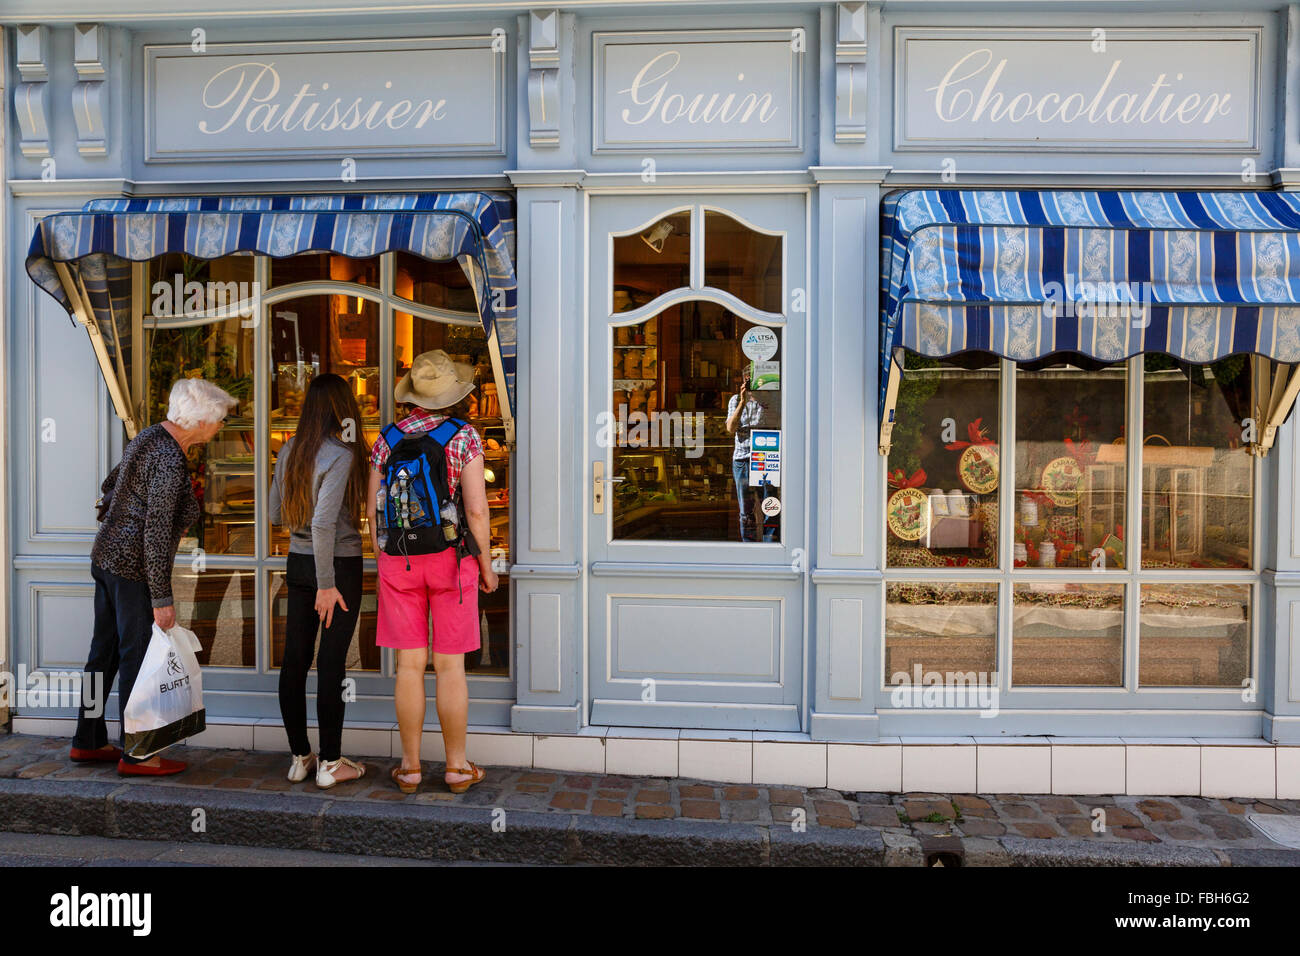 Admiring the cakes in a pâtisserie window at Mortagne-au-Perche, Normandy, France - Stock Image